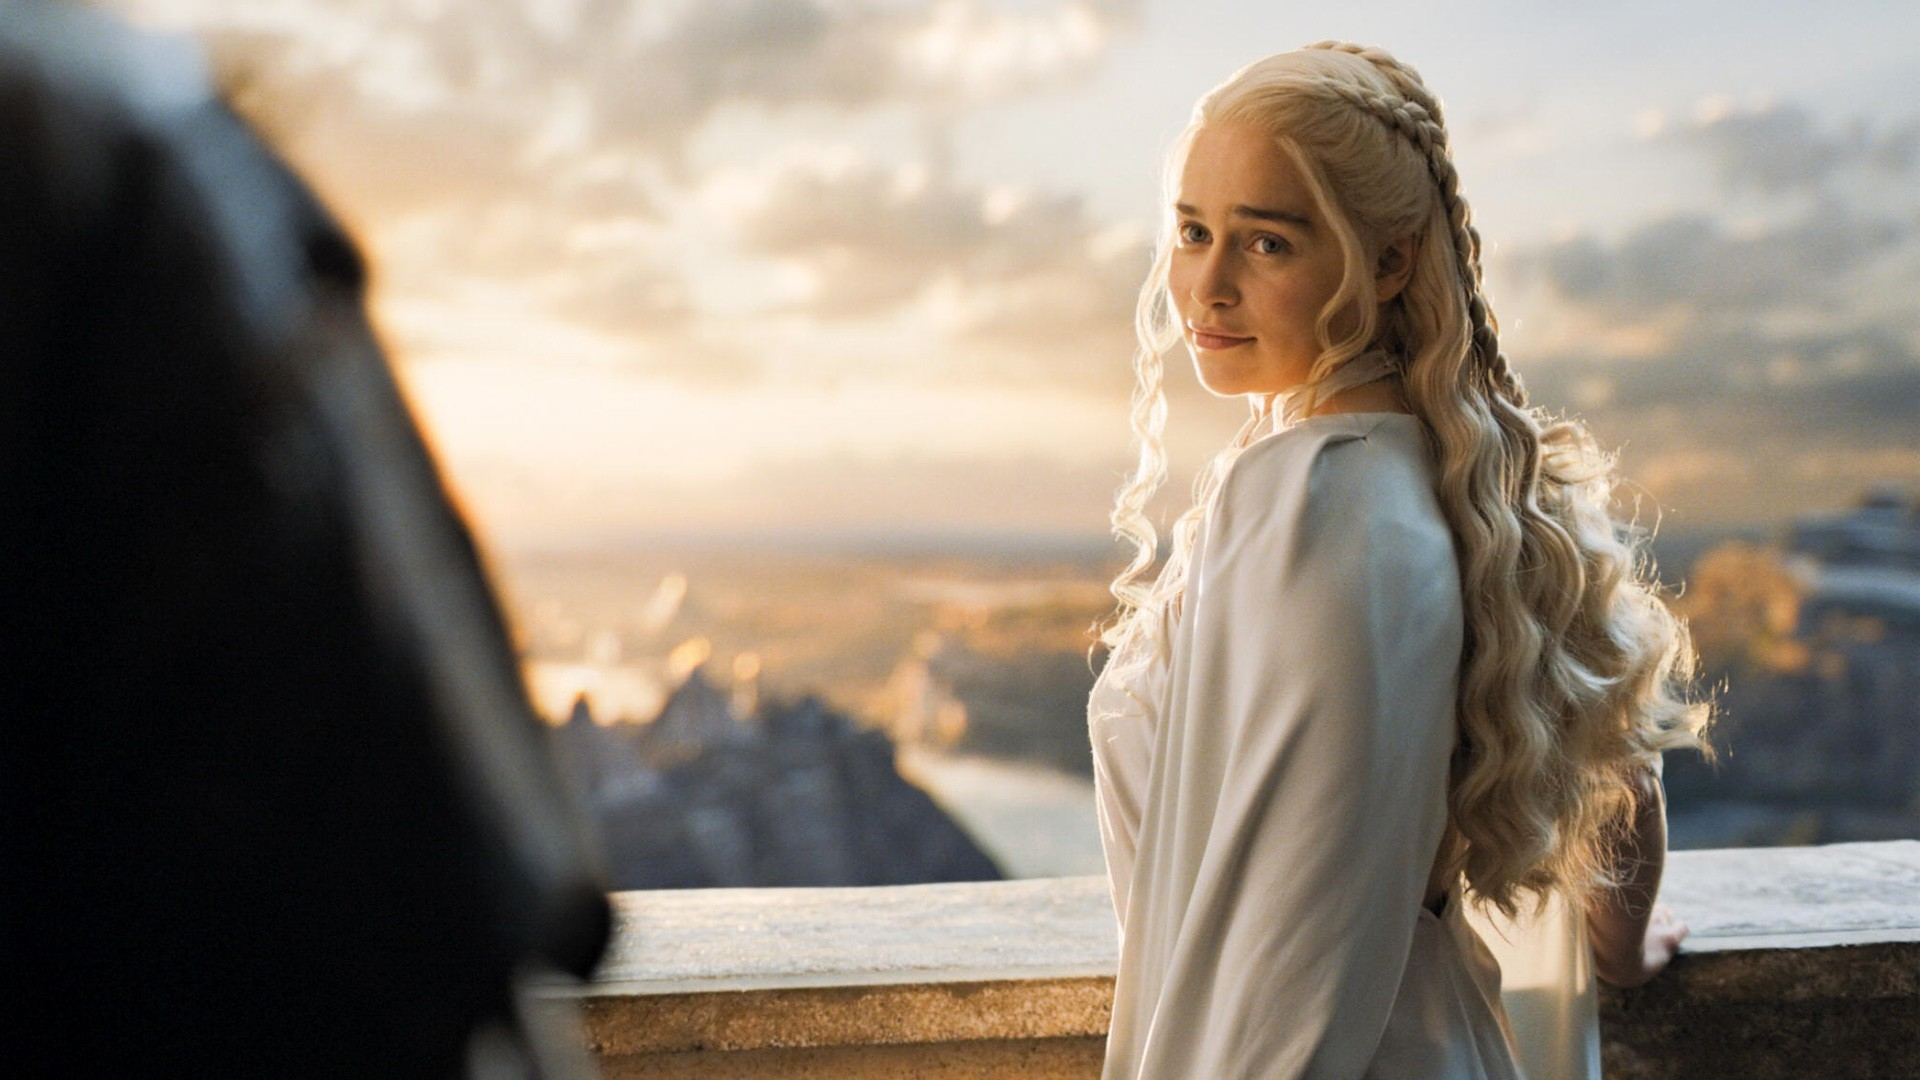 emilia clarke game of thrones hd tv shows 4k wallpapers